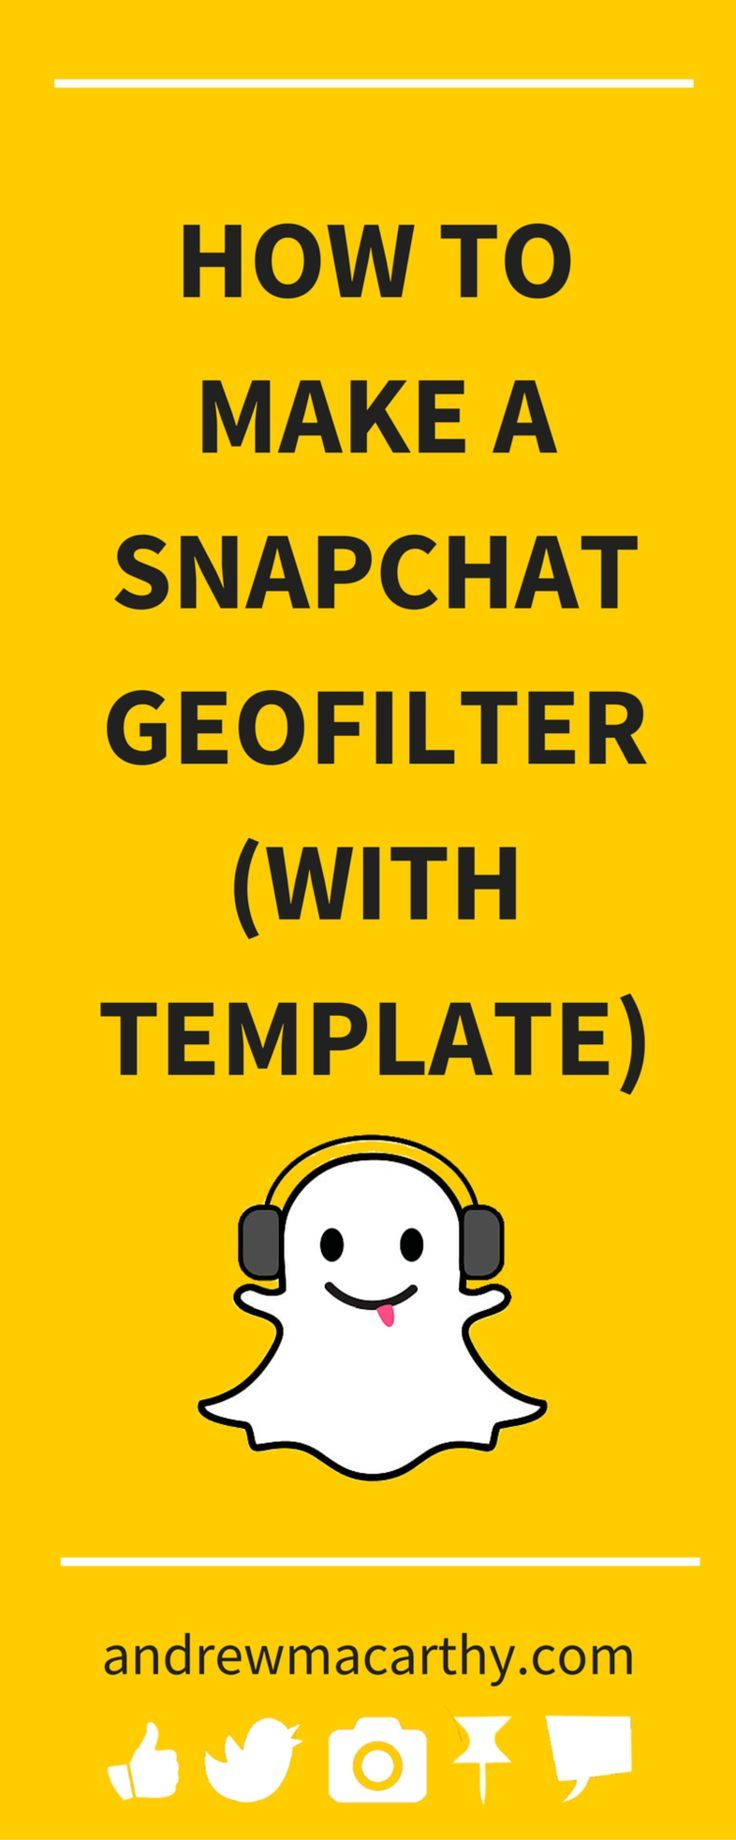 17 best images about snapchat filters locations on for Snapchat geofilter template free